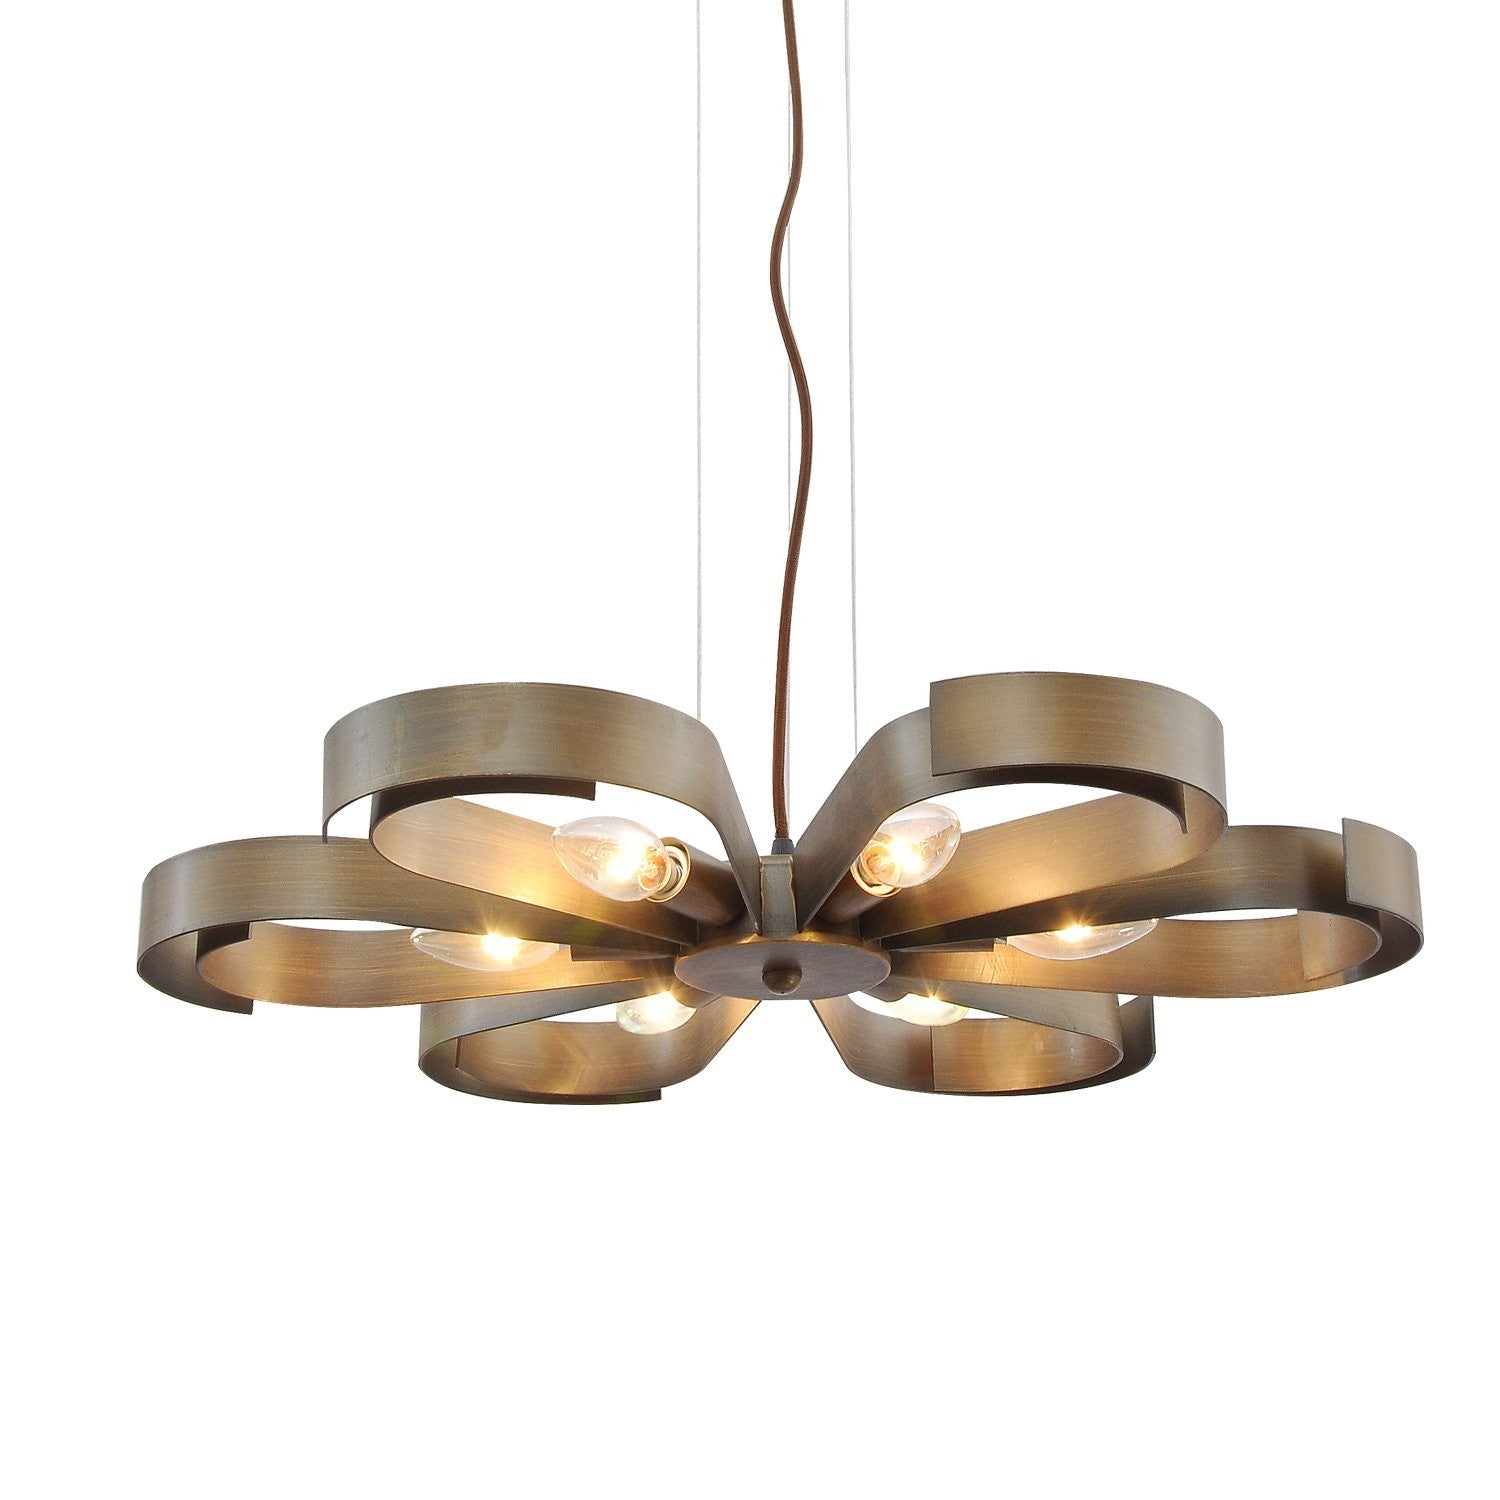 Unitary Brand Antique Copper Metal Floral Pendant light with 6 E12 Bulb Sockets 360W Copper Finish  sc 1 st  unitarylighting - Shopify : floral pendant light - azcodes.com